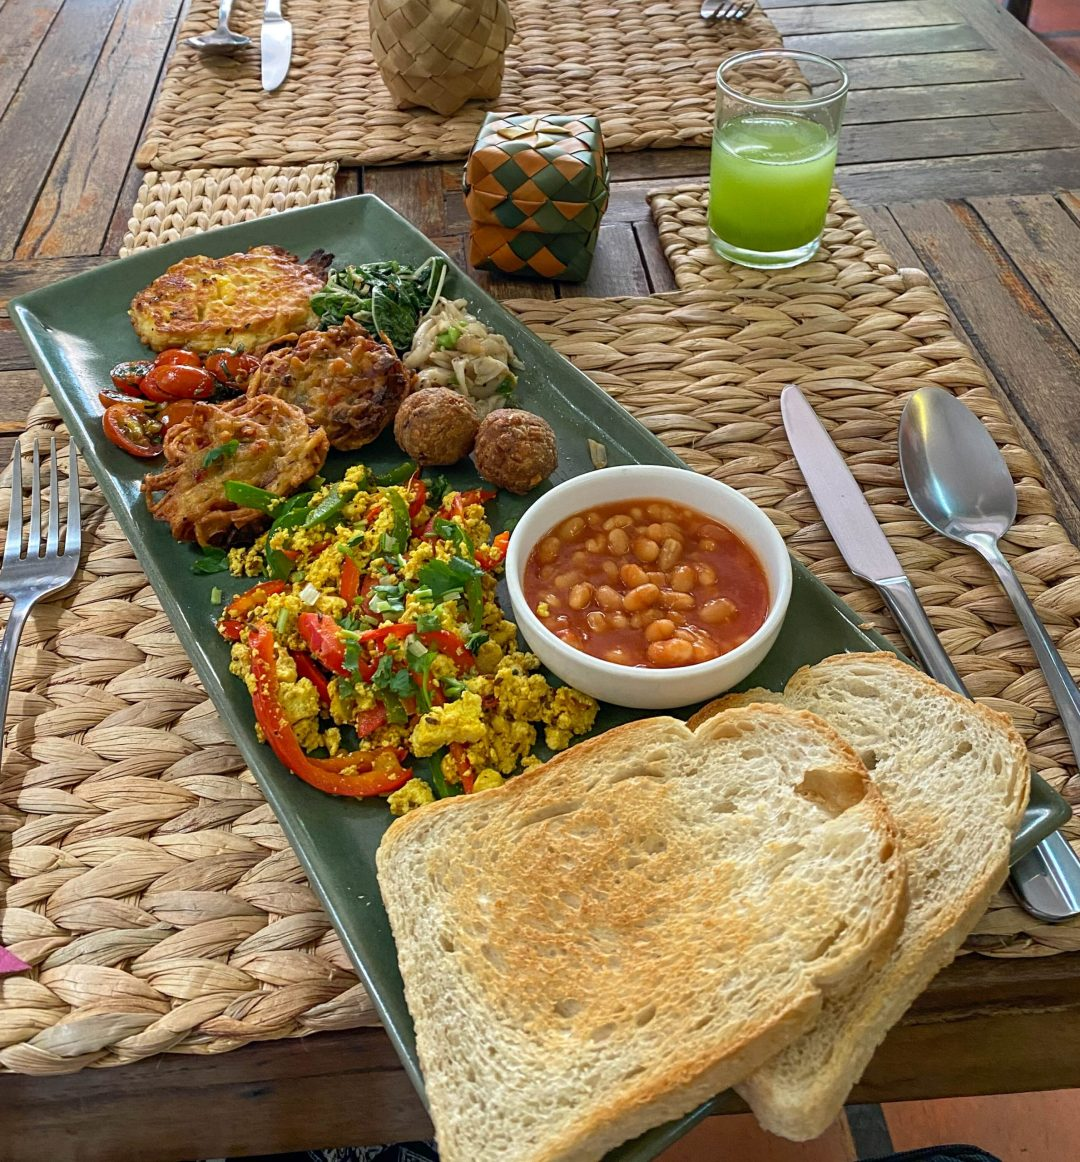 Vegan full breakfast with toast, beans, tofu scramble, tomatoes, etc. from New Leaf Eatery